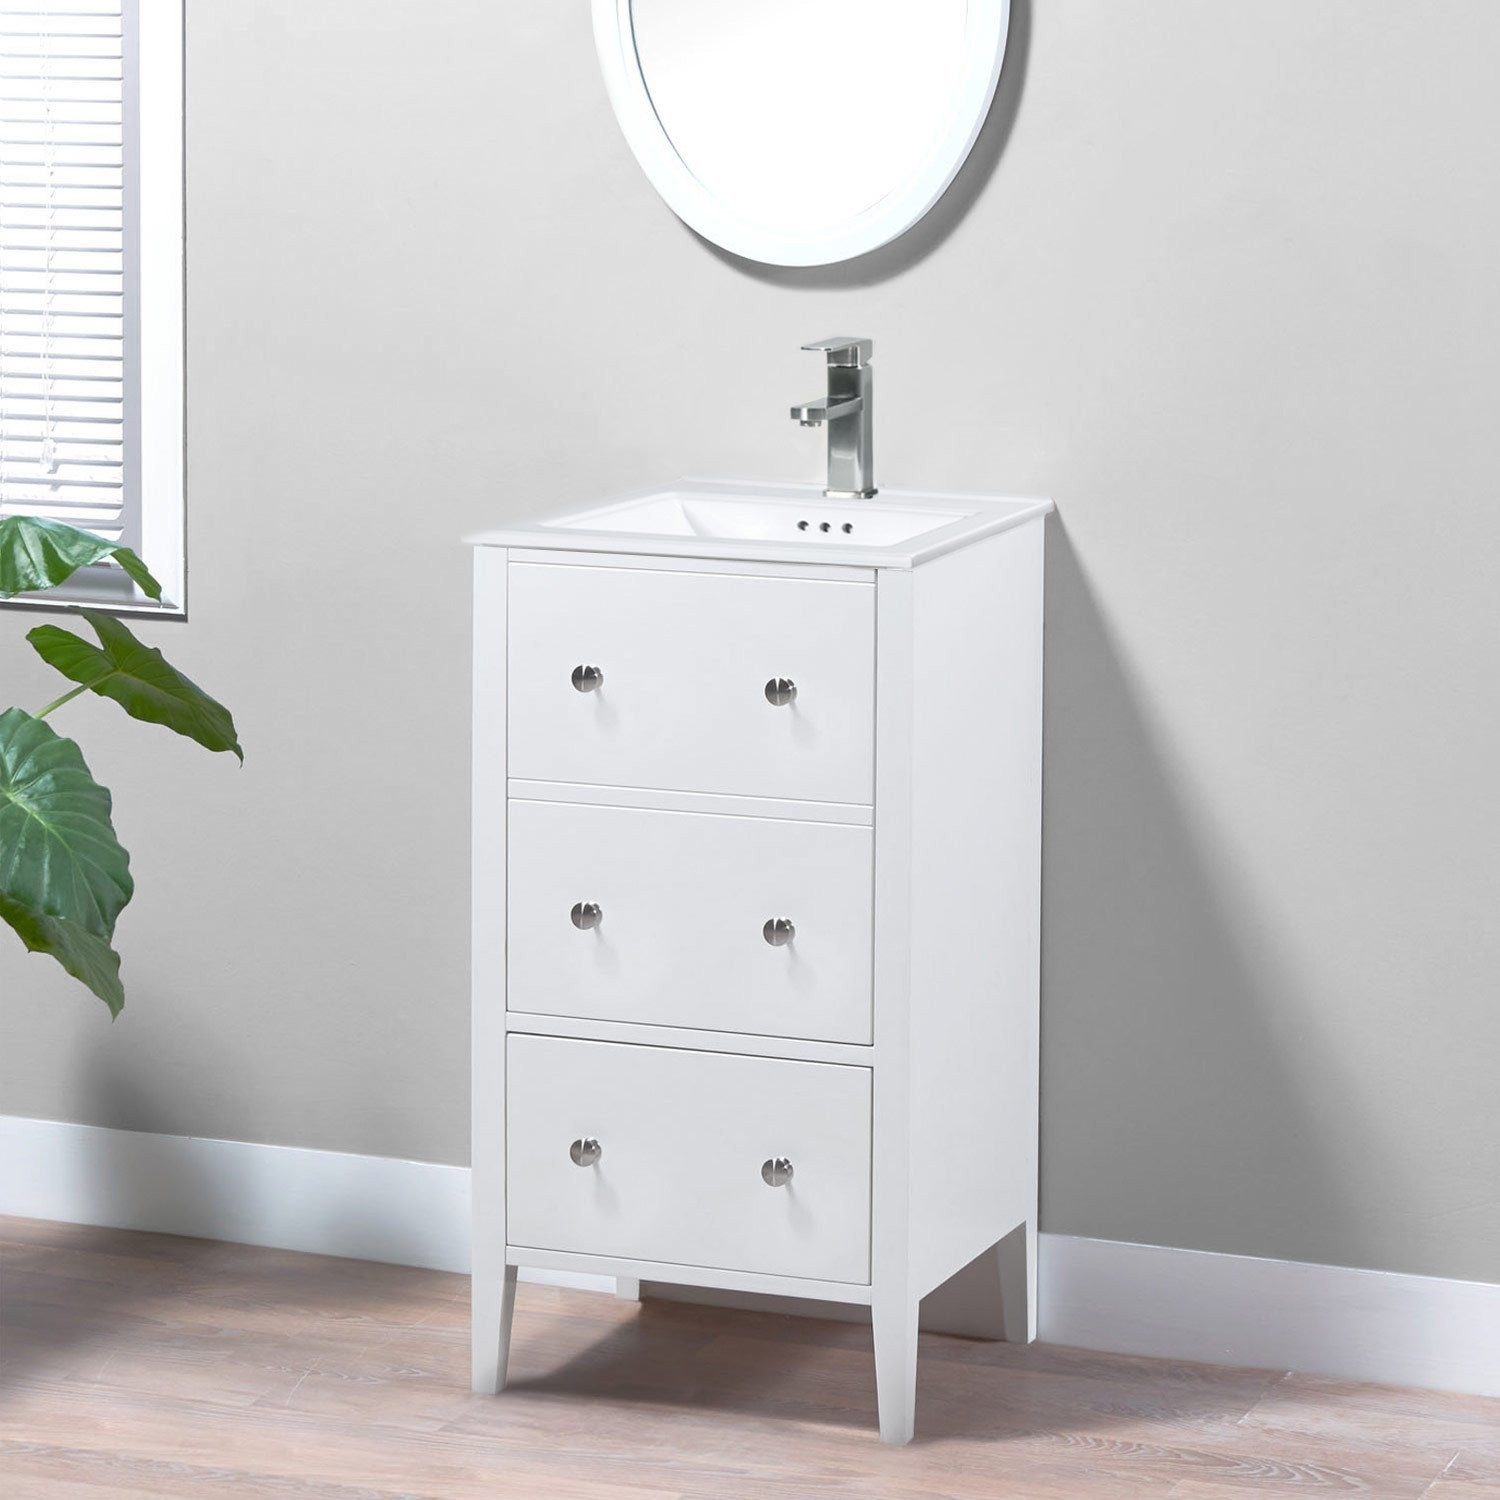 18 addison single sink freestanding bathroom vanity base only without sink and top white for 18 inch white bathroom vanity